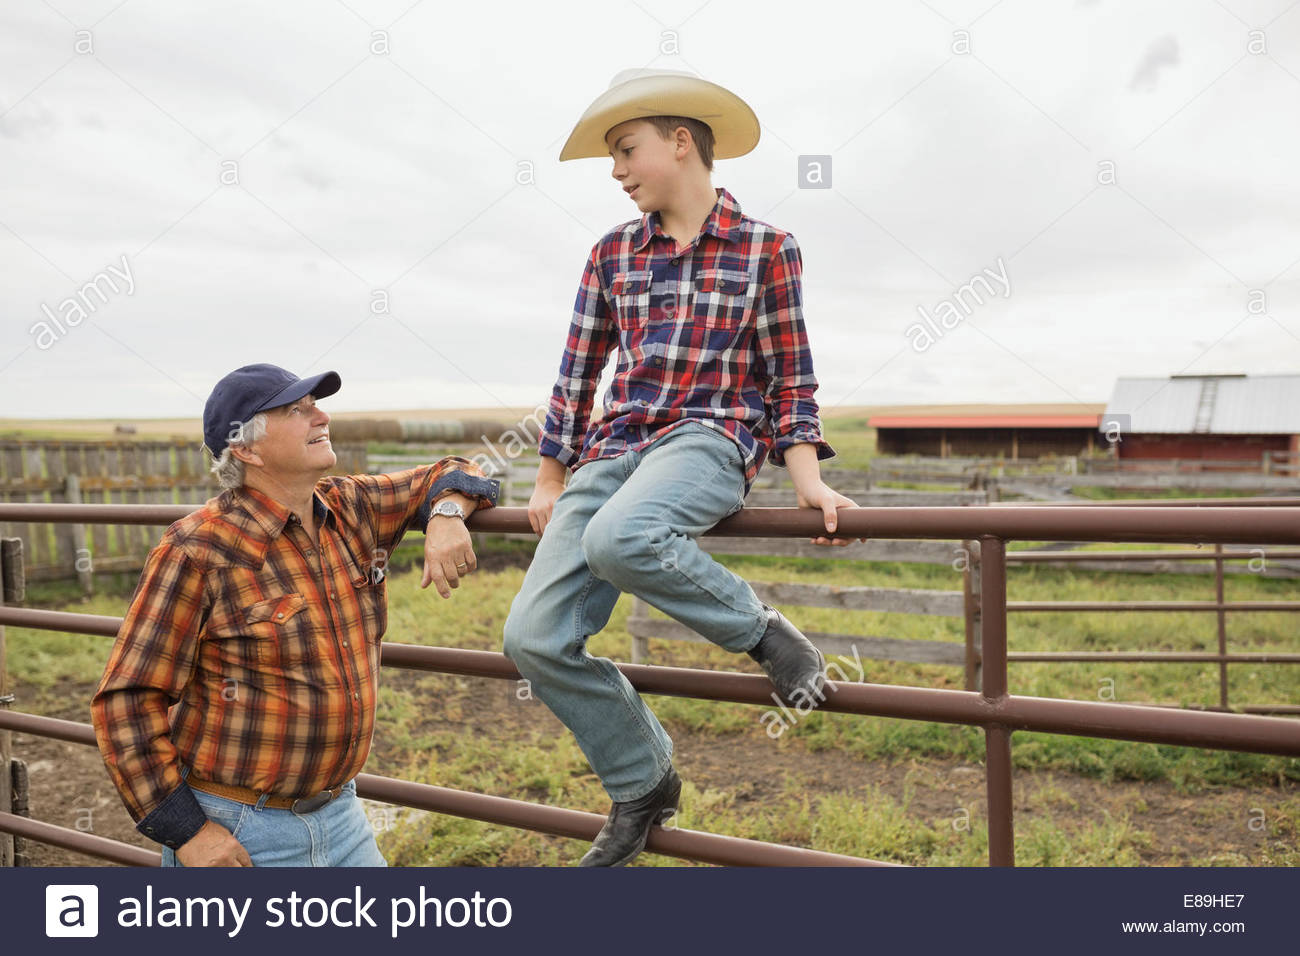 Grandfather and grandson talking at farm fence - Stock Image